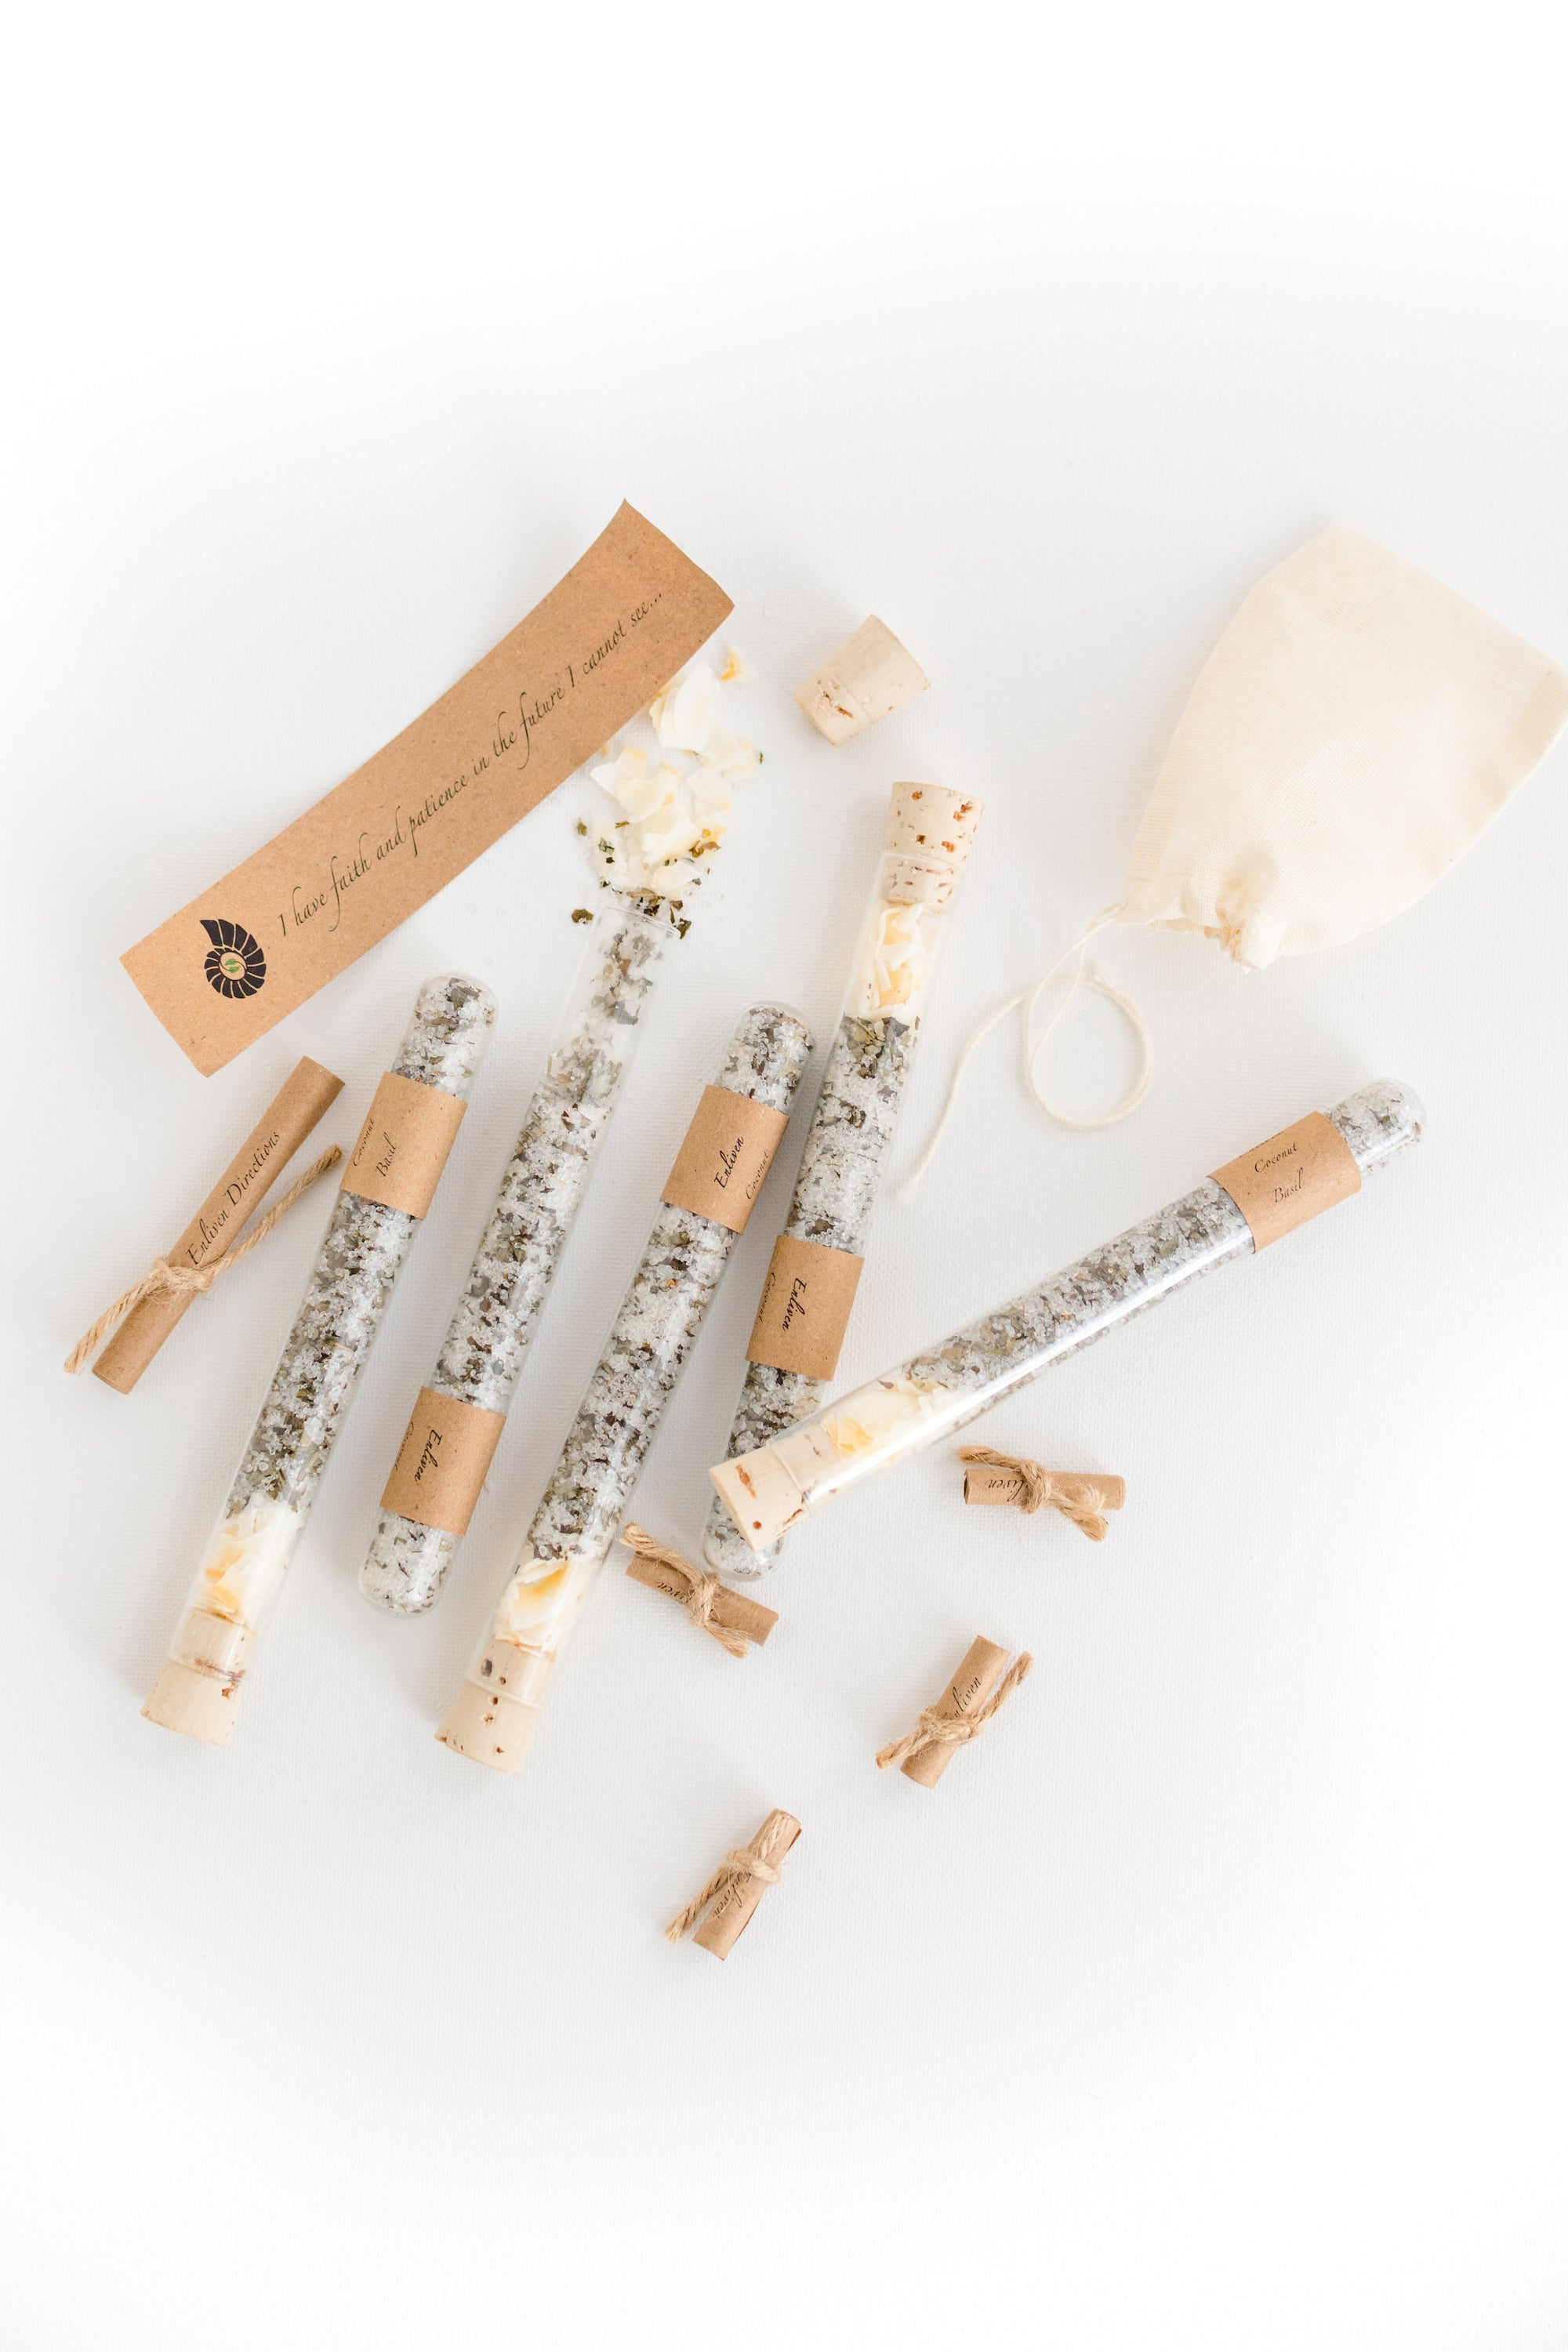 Truly Aesthetic Enliven Coconut Basil Bath Affirmations Bath Salt Tubes and Positive Affirmation